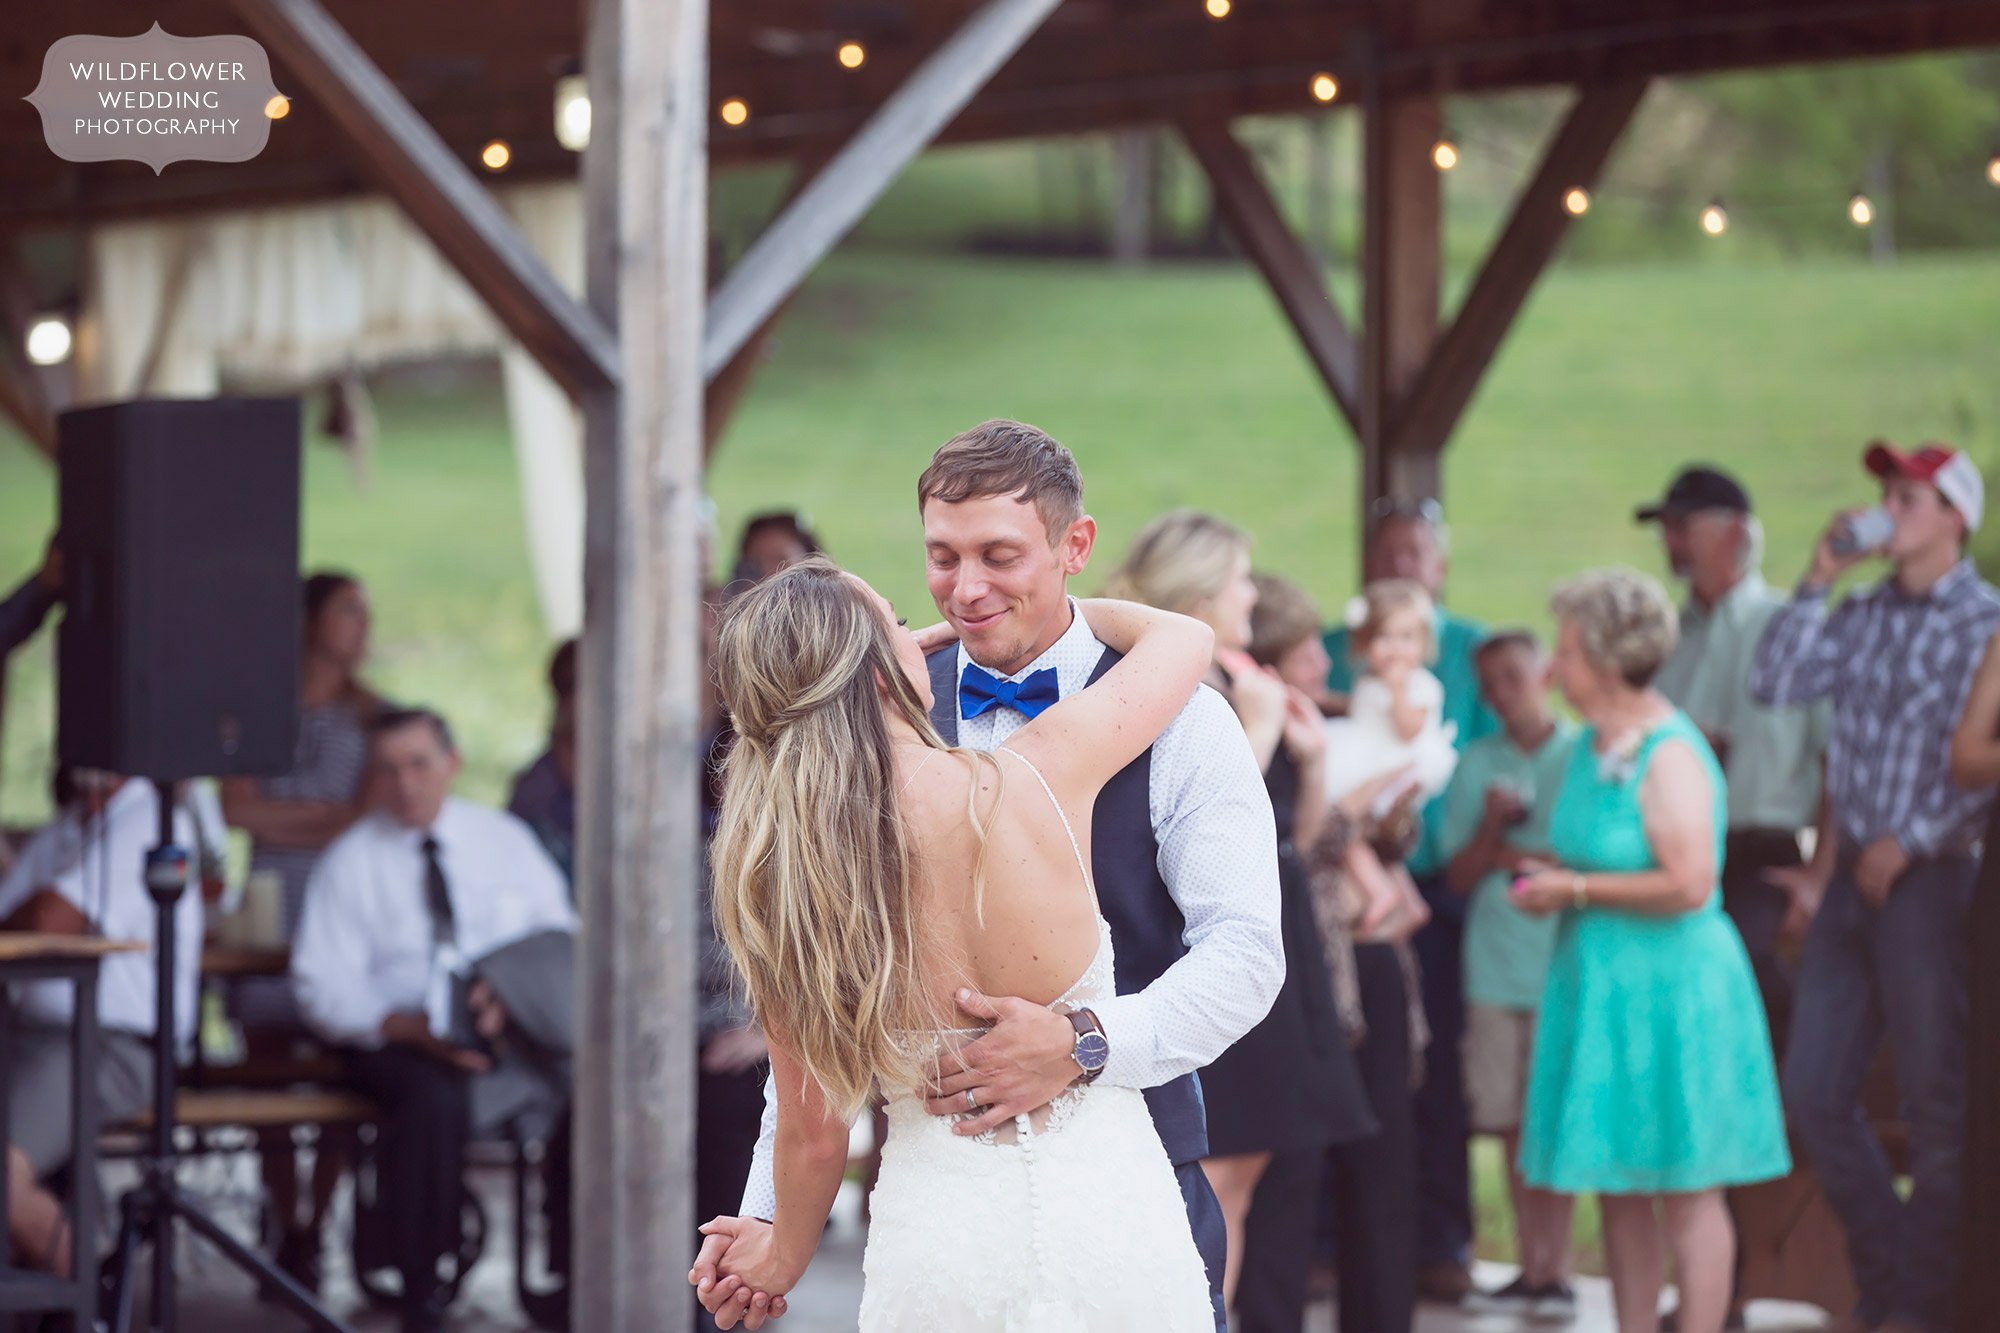 The bride and groom have a romantic first dance during their country barn wedding at the Kempker's Back 40 venue.